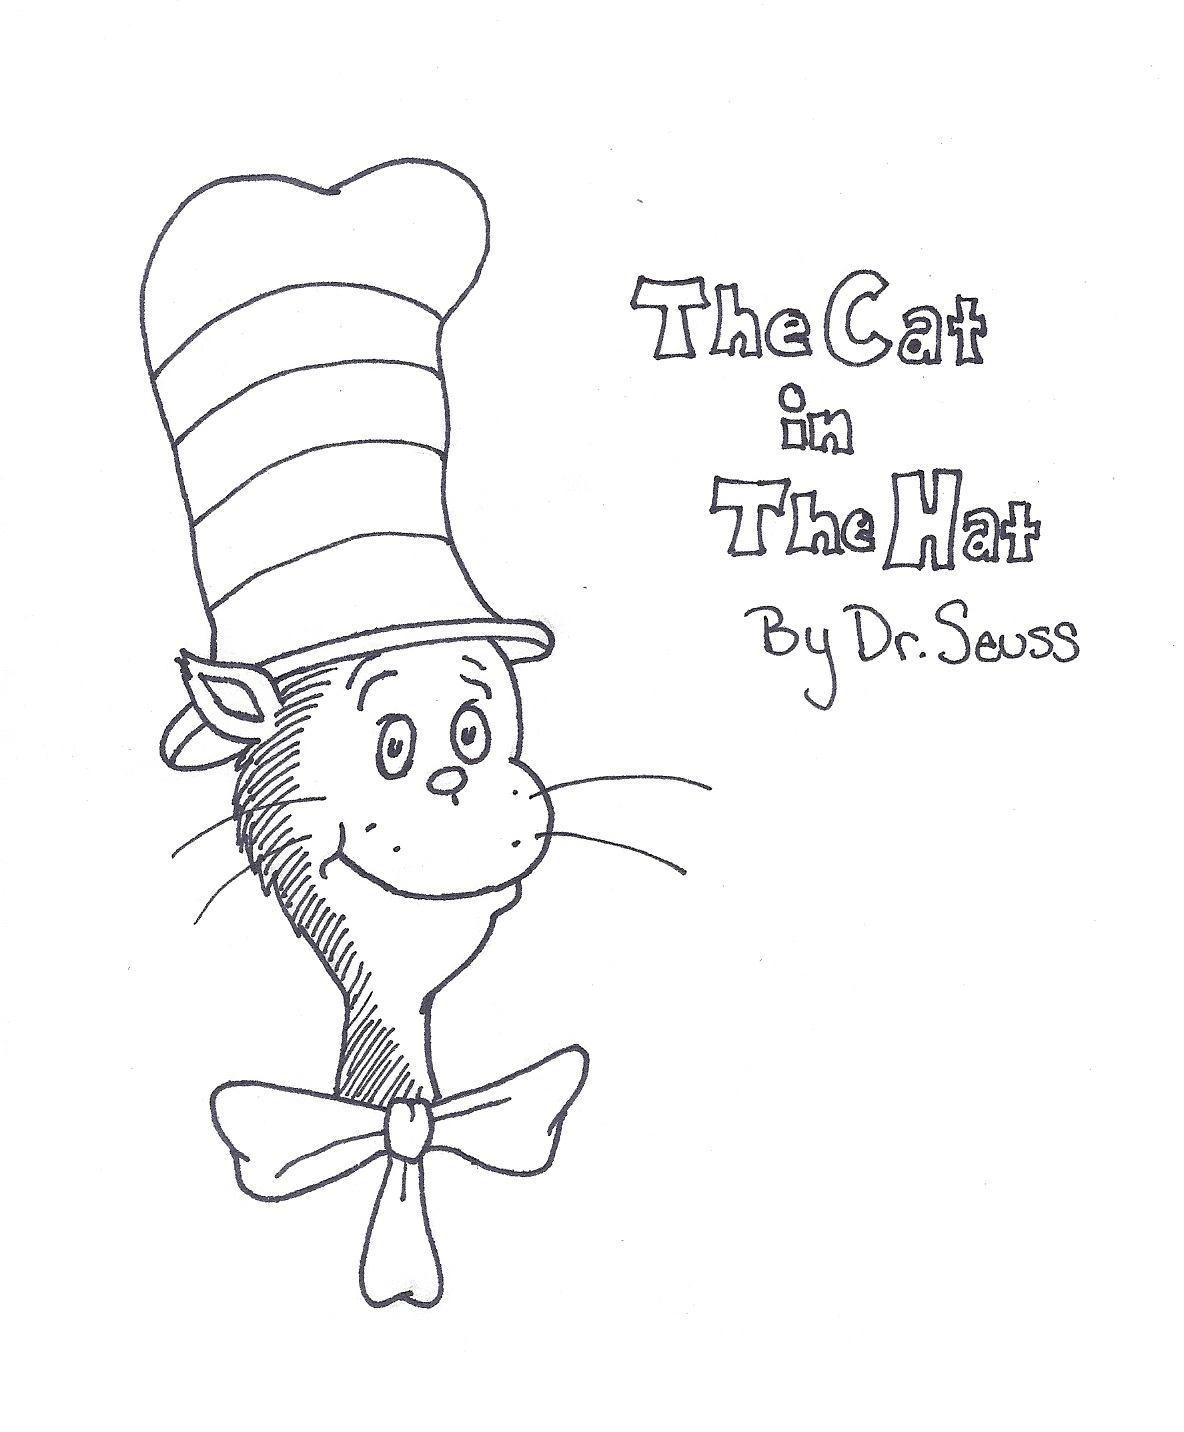 photo relating to Dr.seuss Book Covers Printable named Cat Within The Hat Guide Go over Coloring Site